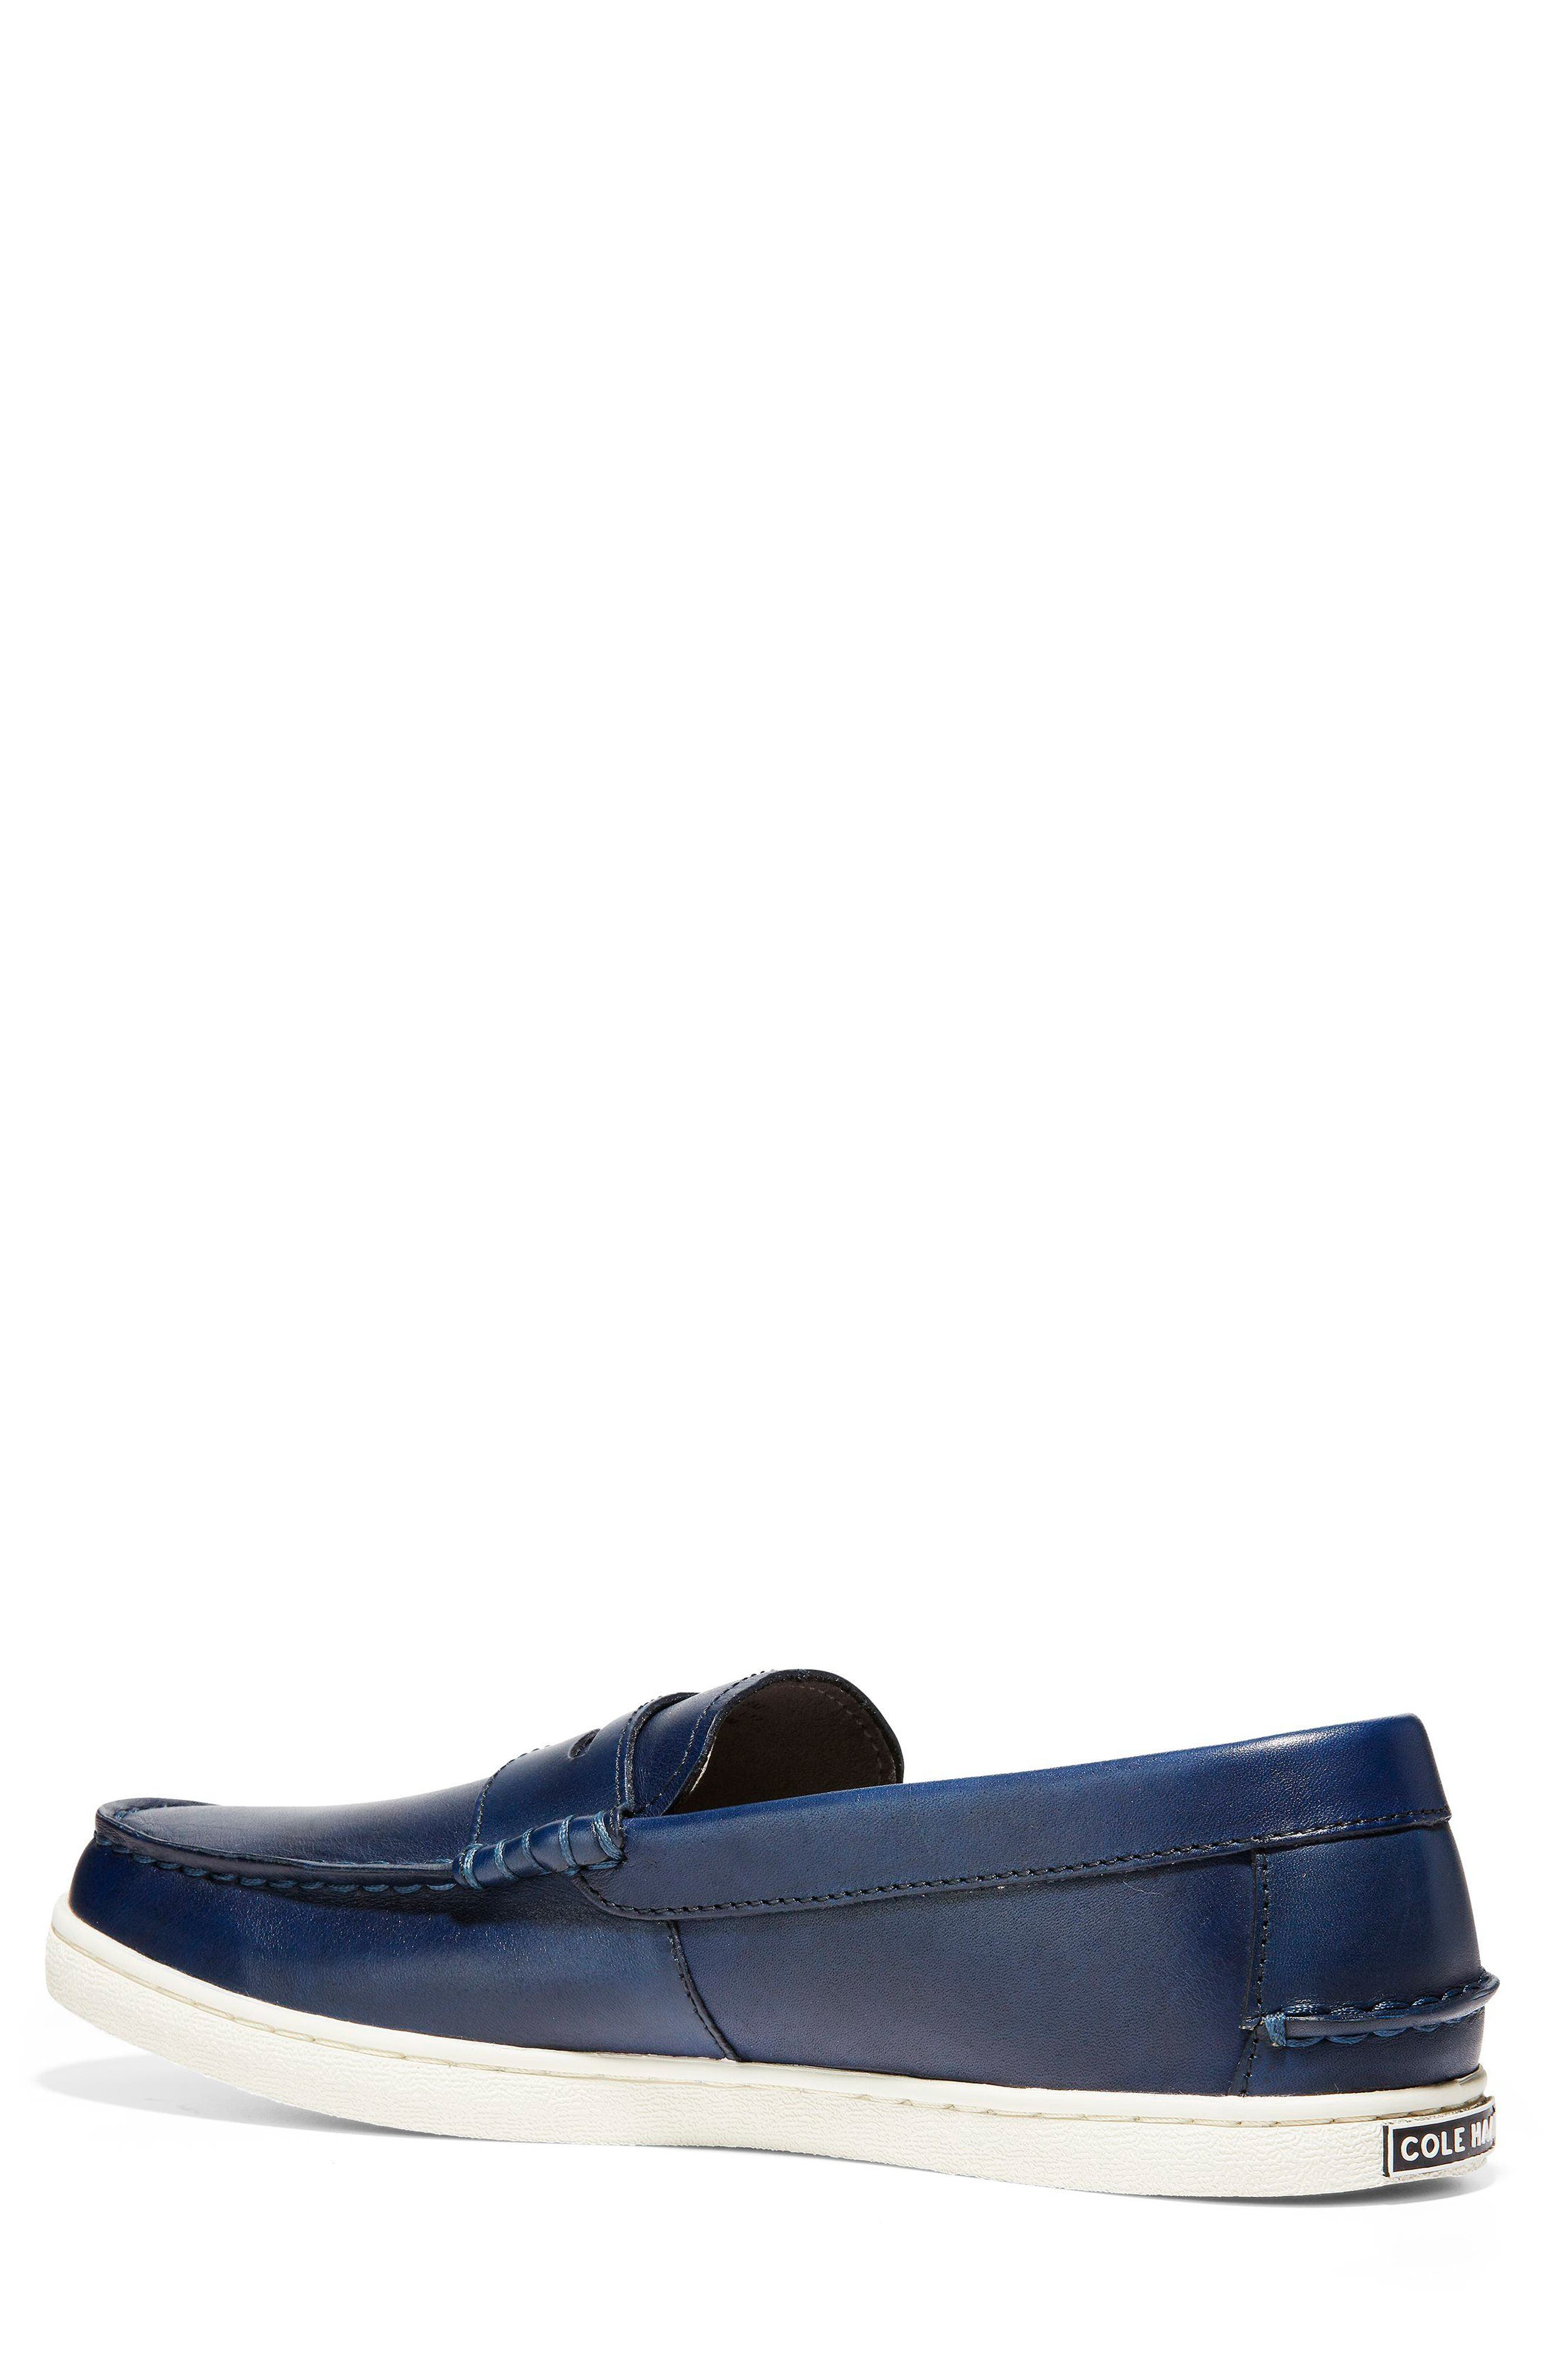 COLE HAAN, Pinch Penny Loafer, Alternate thumbnail 2, color, BLAZER BLUE LEATHER